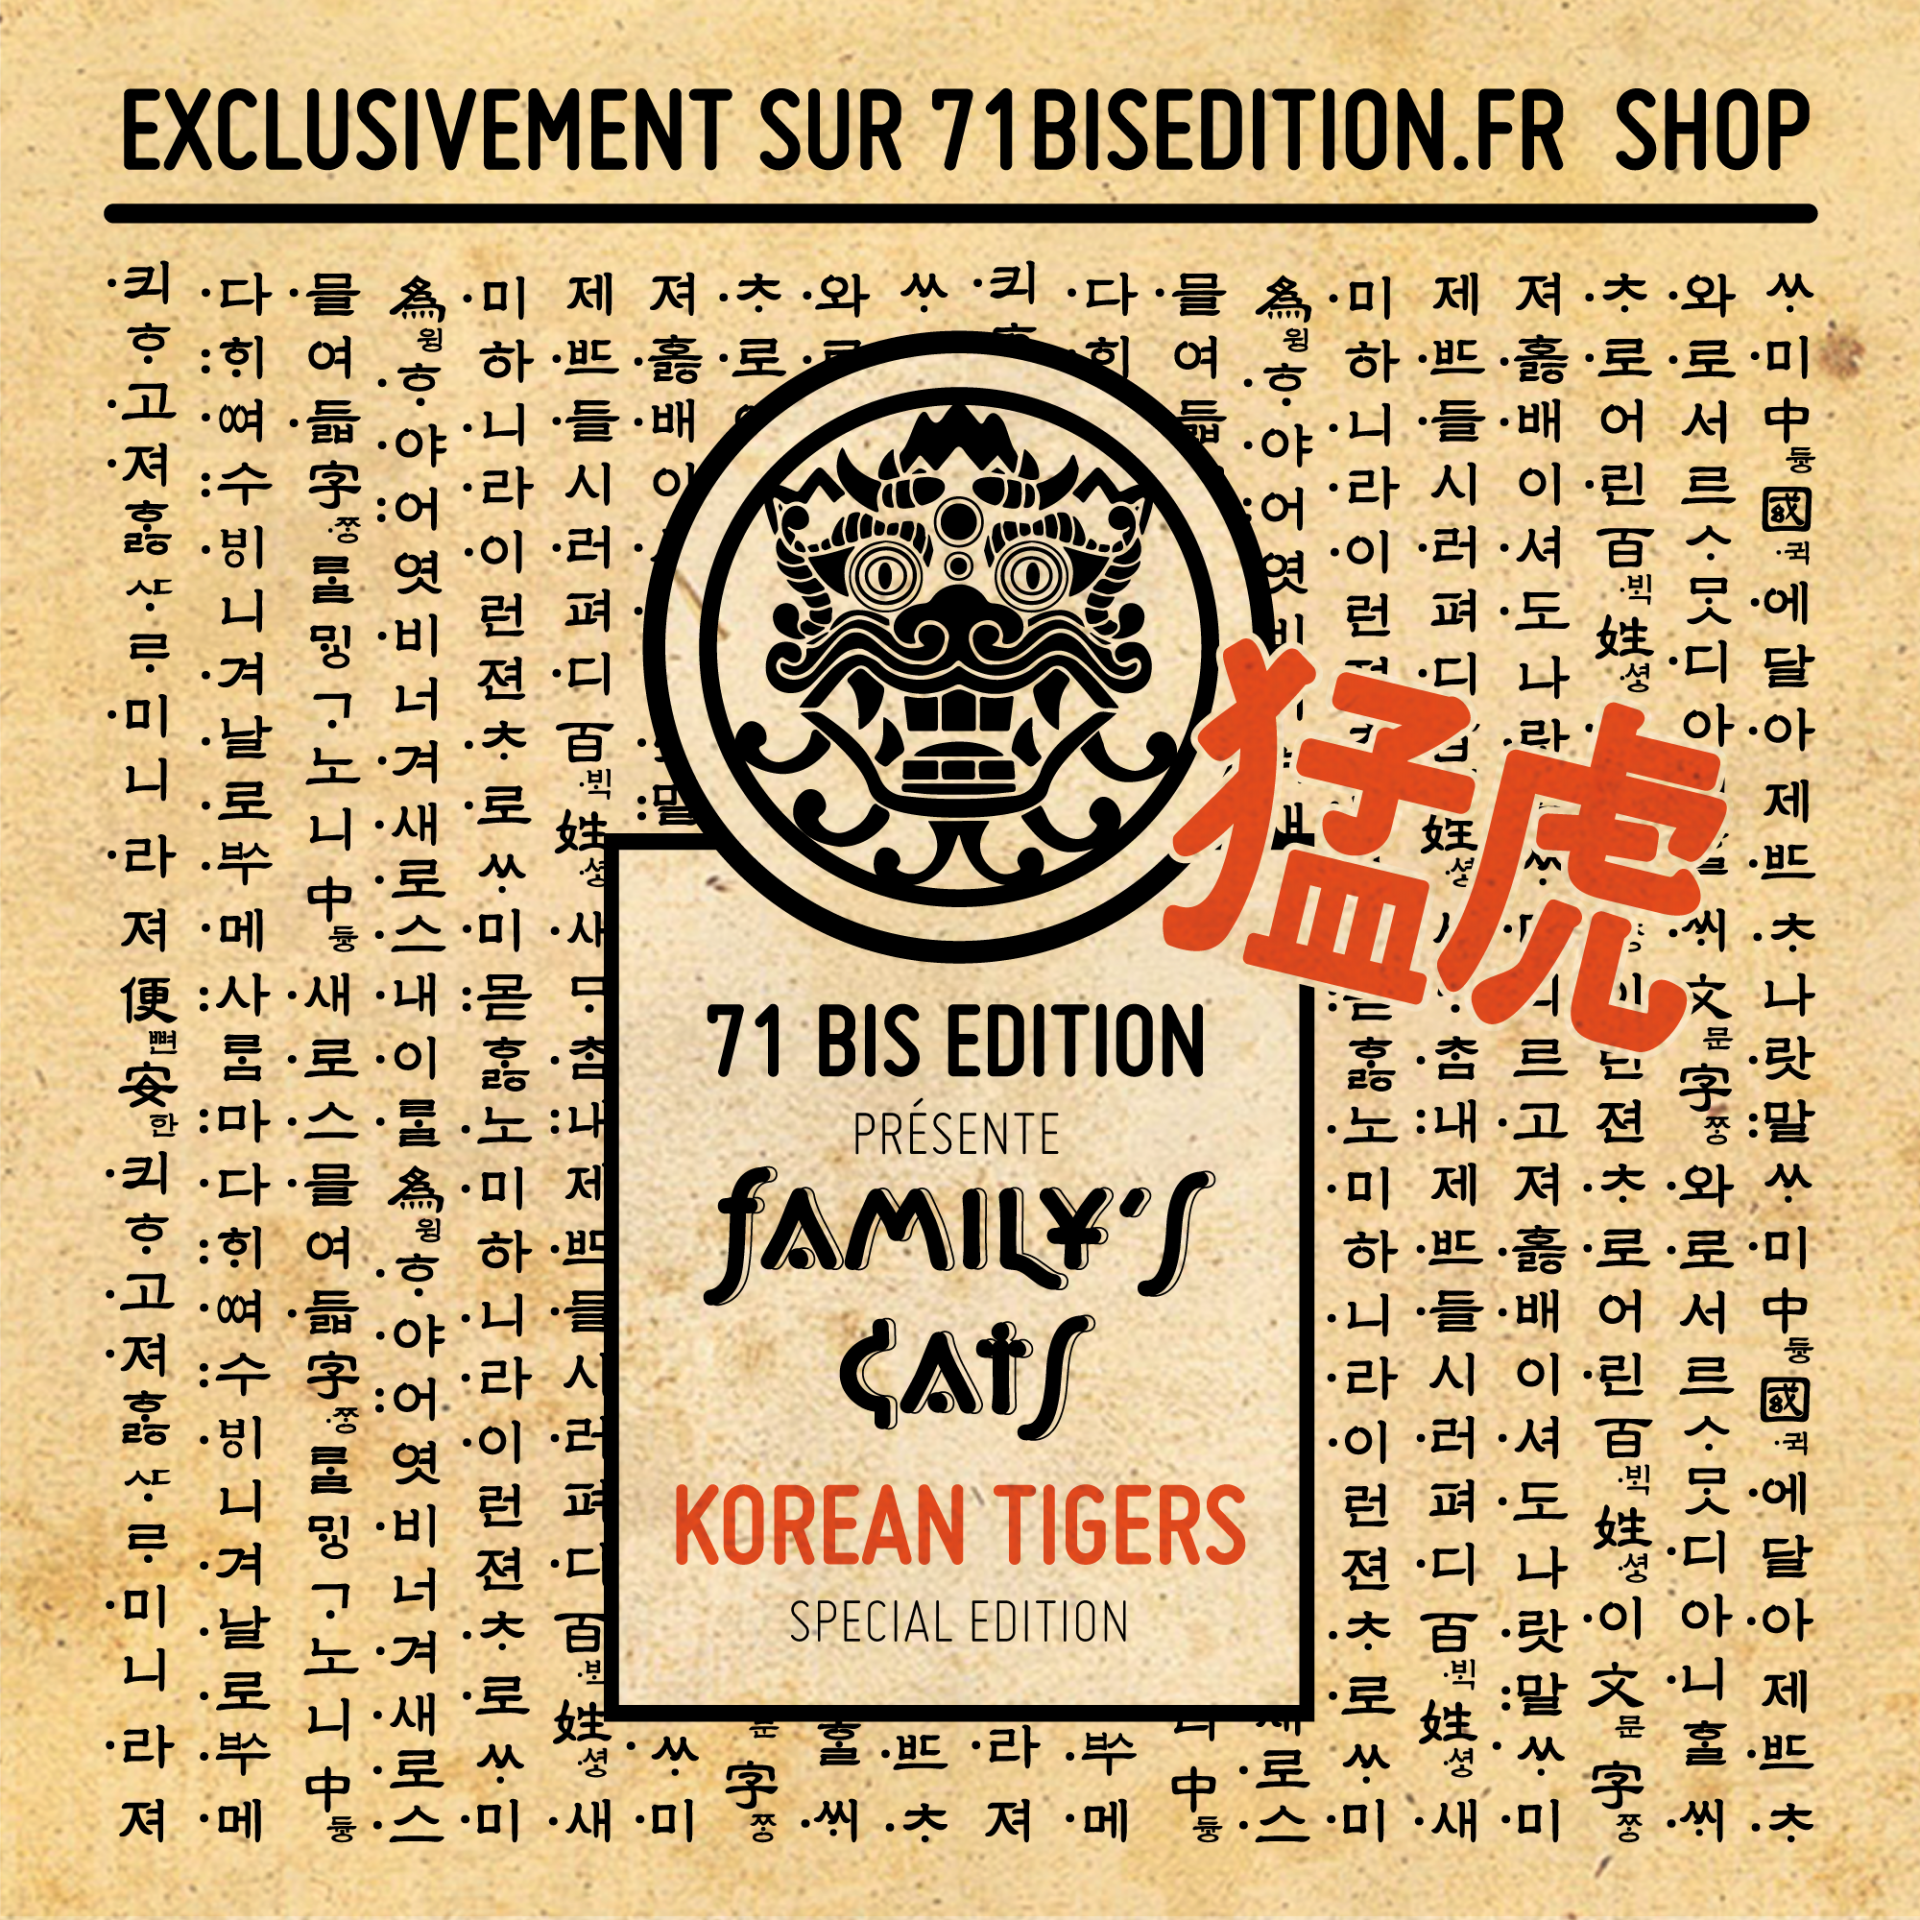 SPECIAL EDITION KOREAN TIGERS